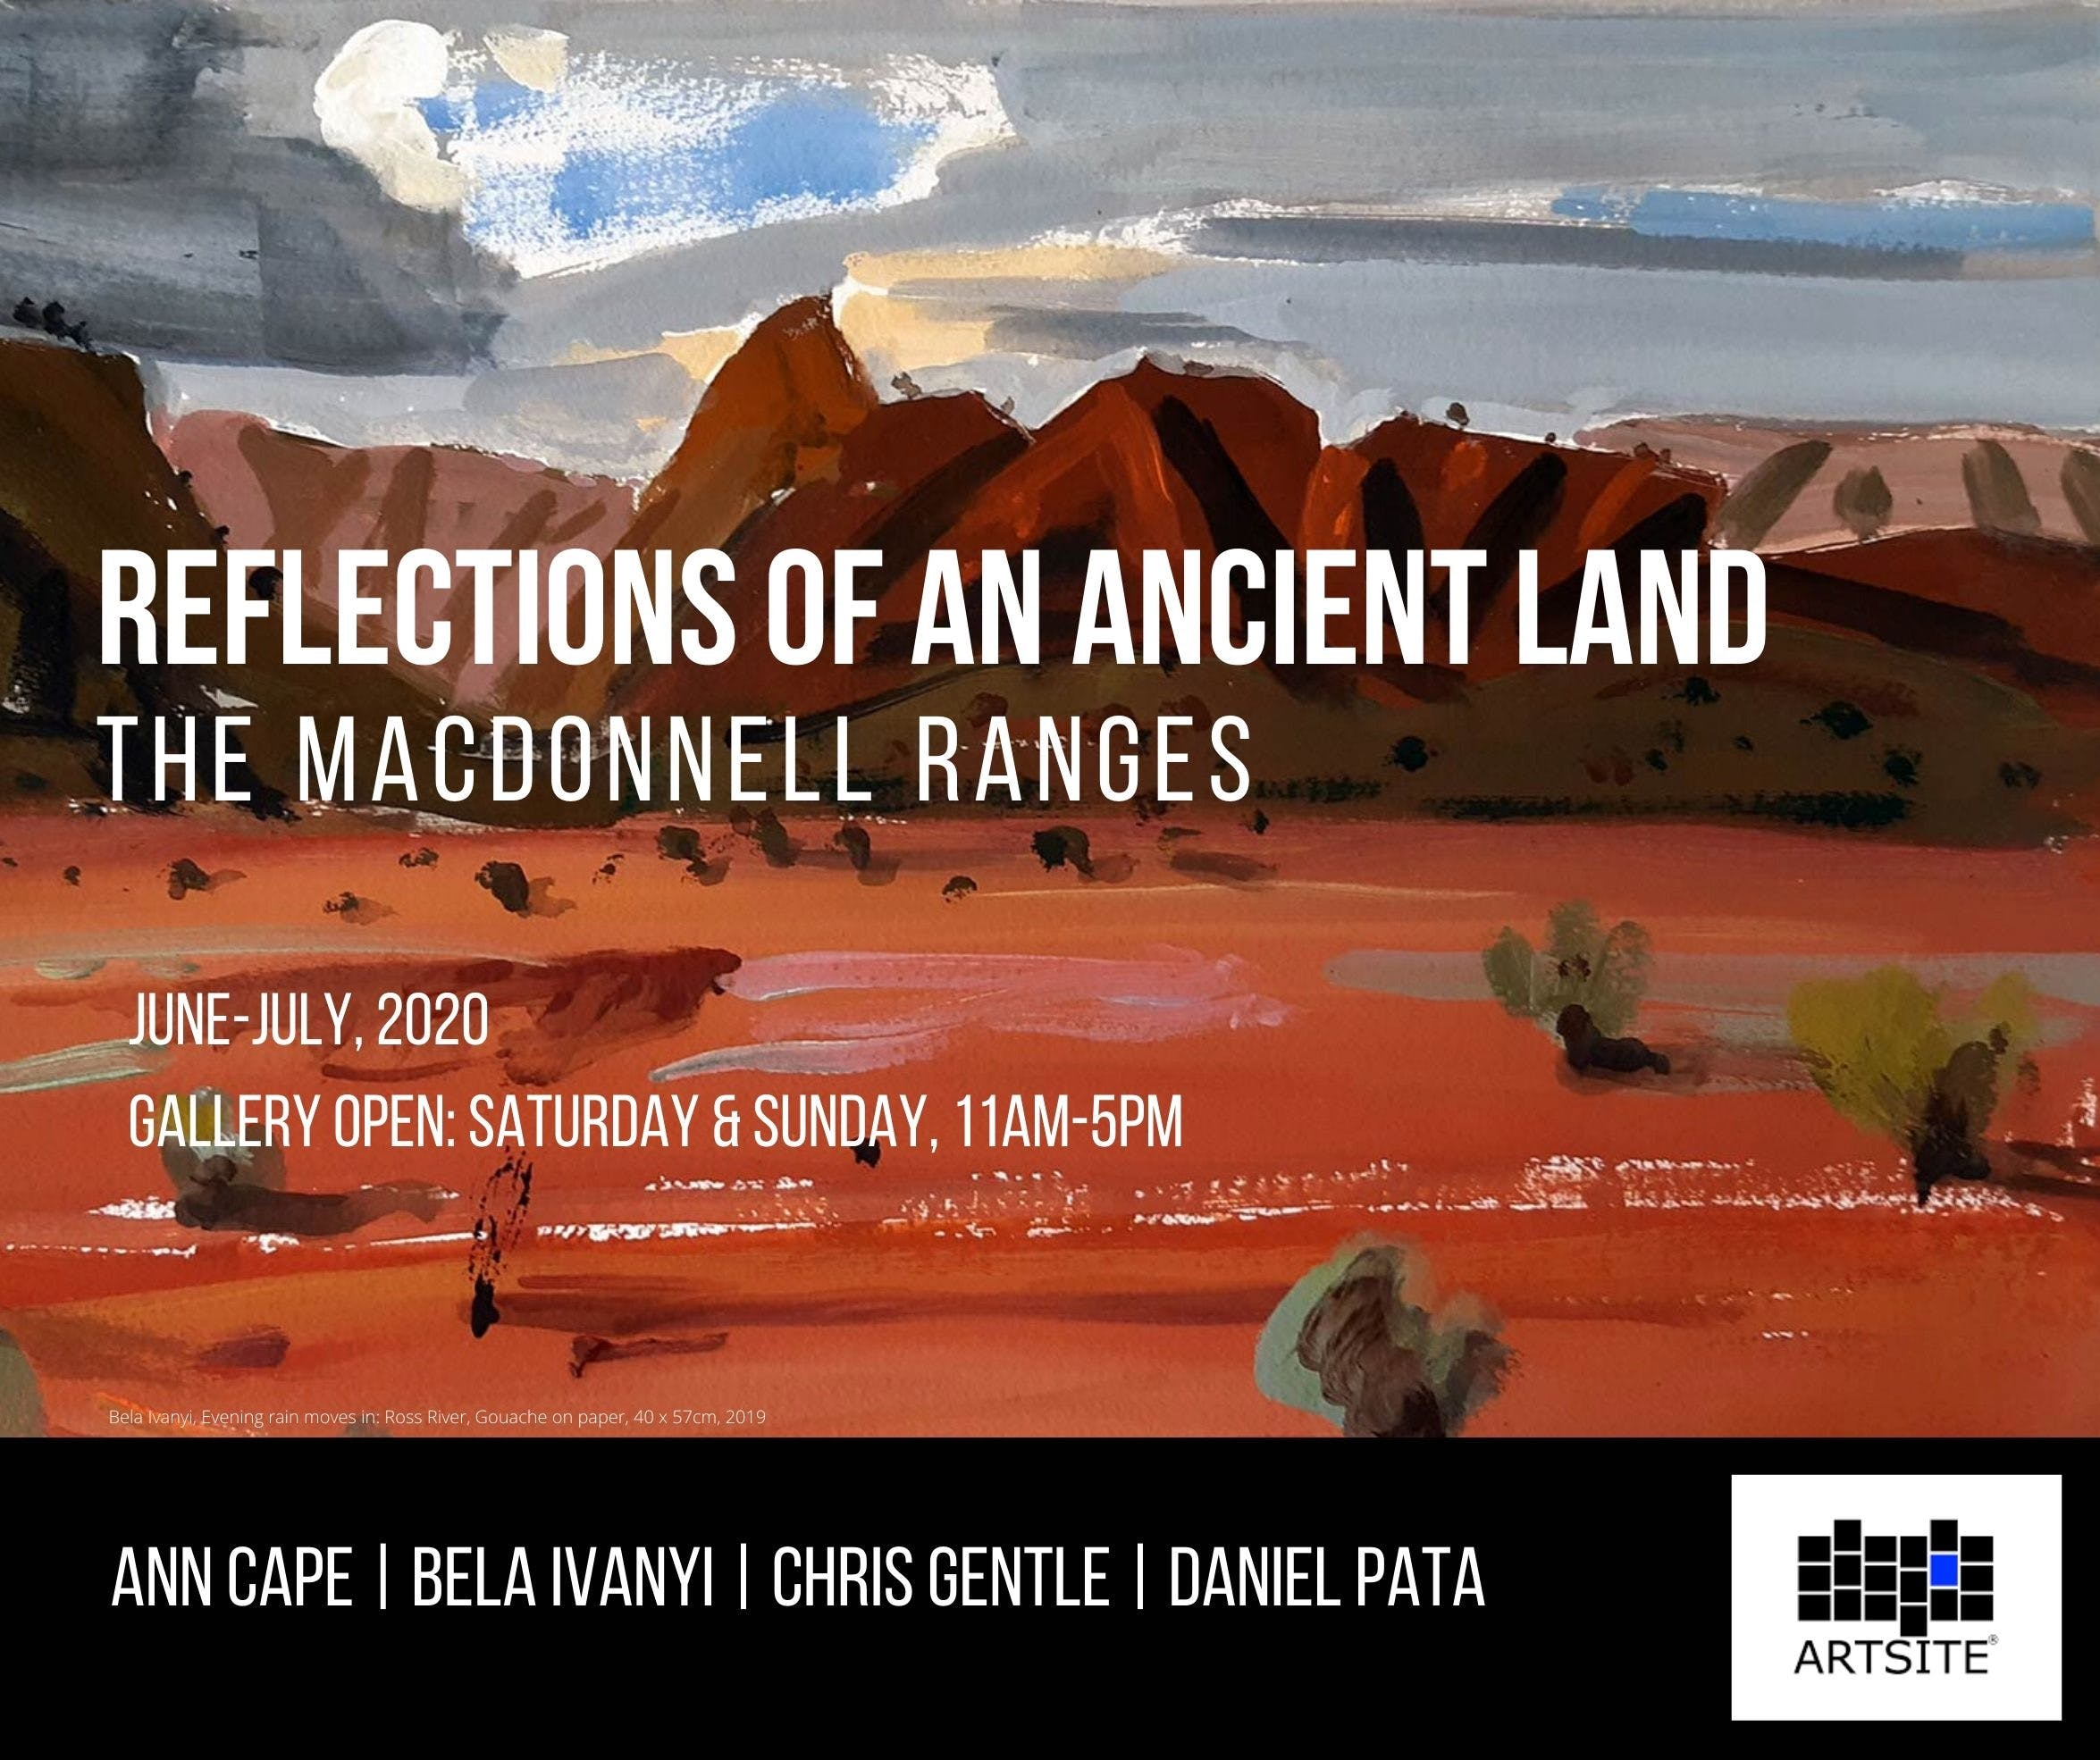 Reflections of An Ancient Land The MacDonnell Ranges - Tourism Cairns